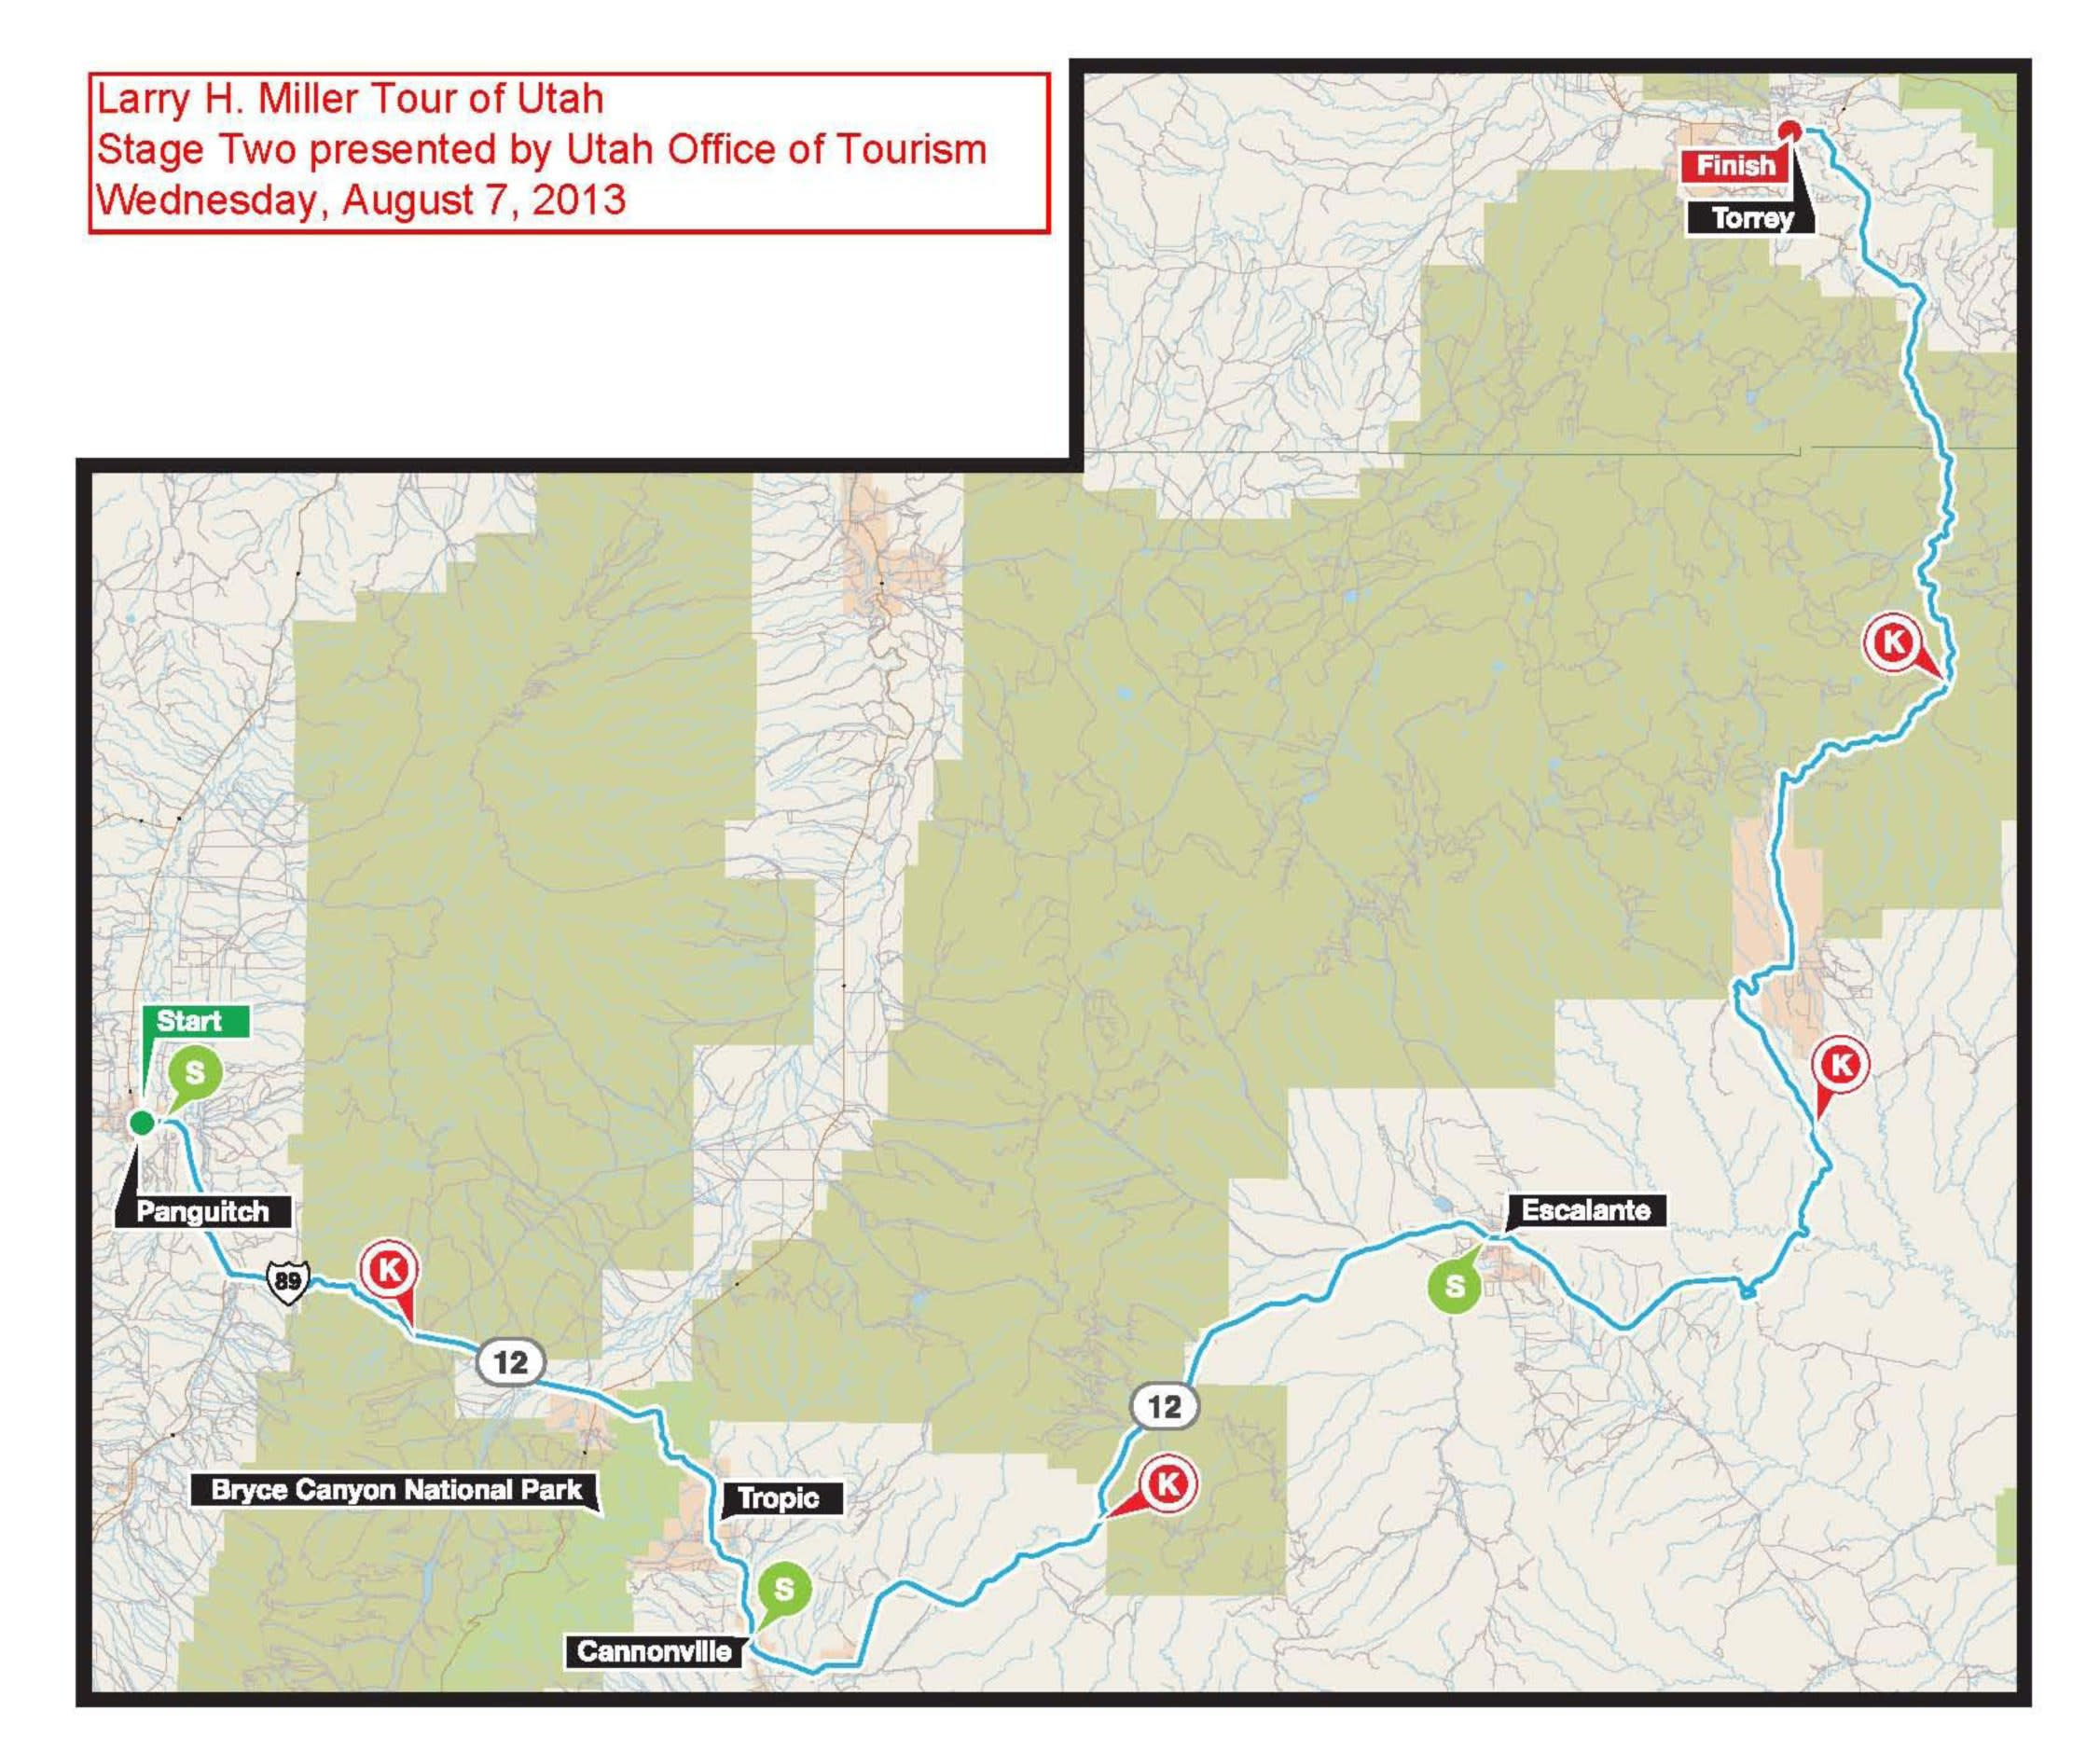 Tour of Utah Map